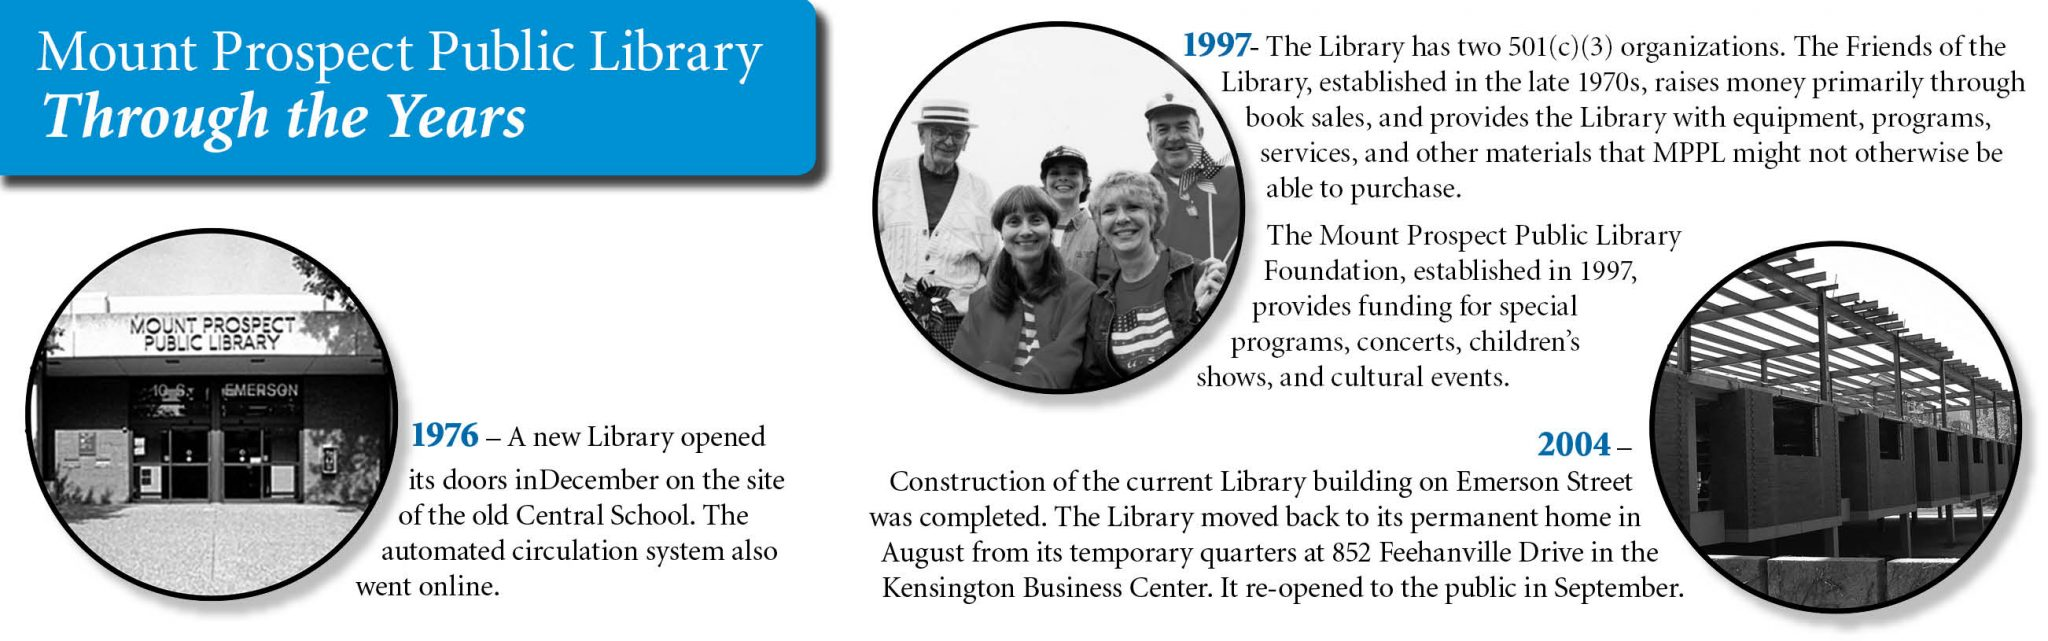 Mount Prospect Public Library through the years (1967, 1997, 2004)